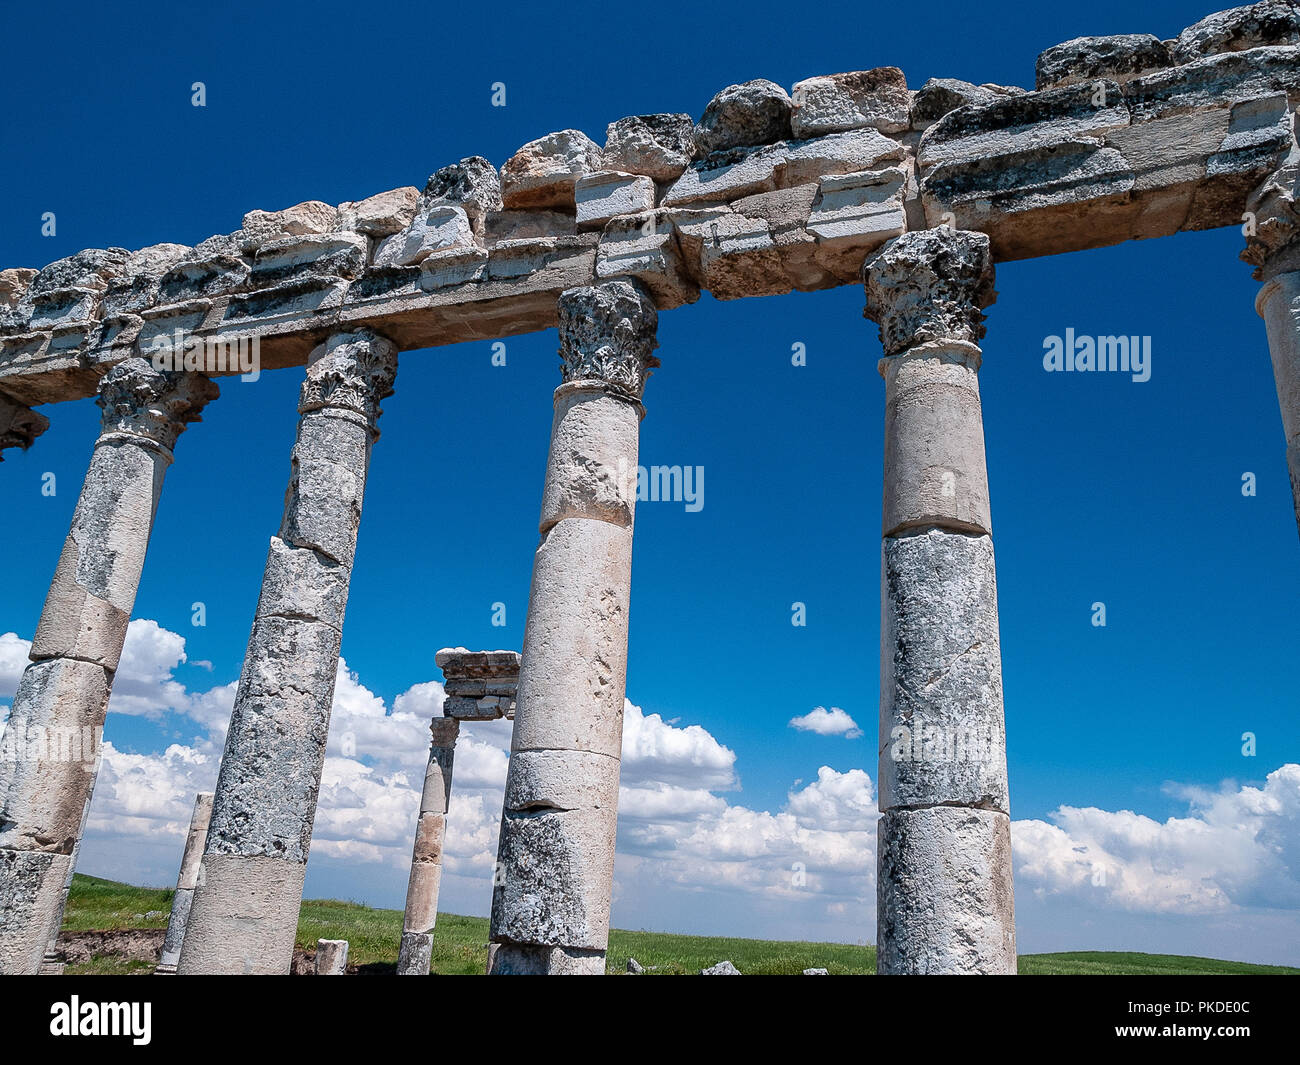 Apamea (also known as Afamia), the ancient Greek and Roman city. The site is located near Qalaat al-Madiq, about 60 km to the northwest of Hama, Syria - Stock Image